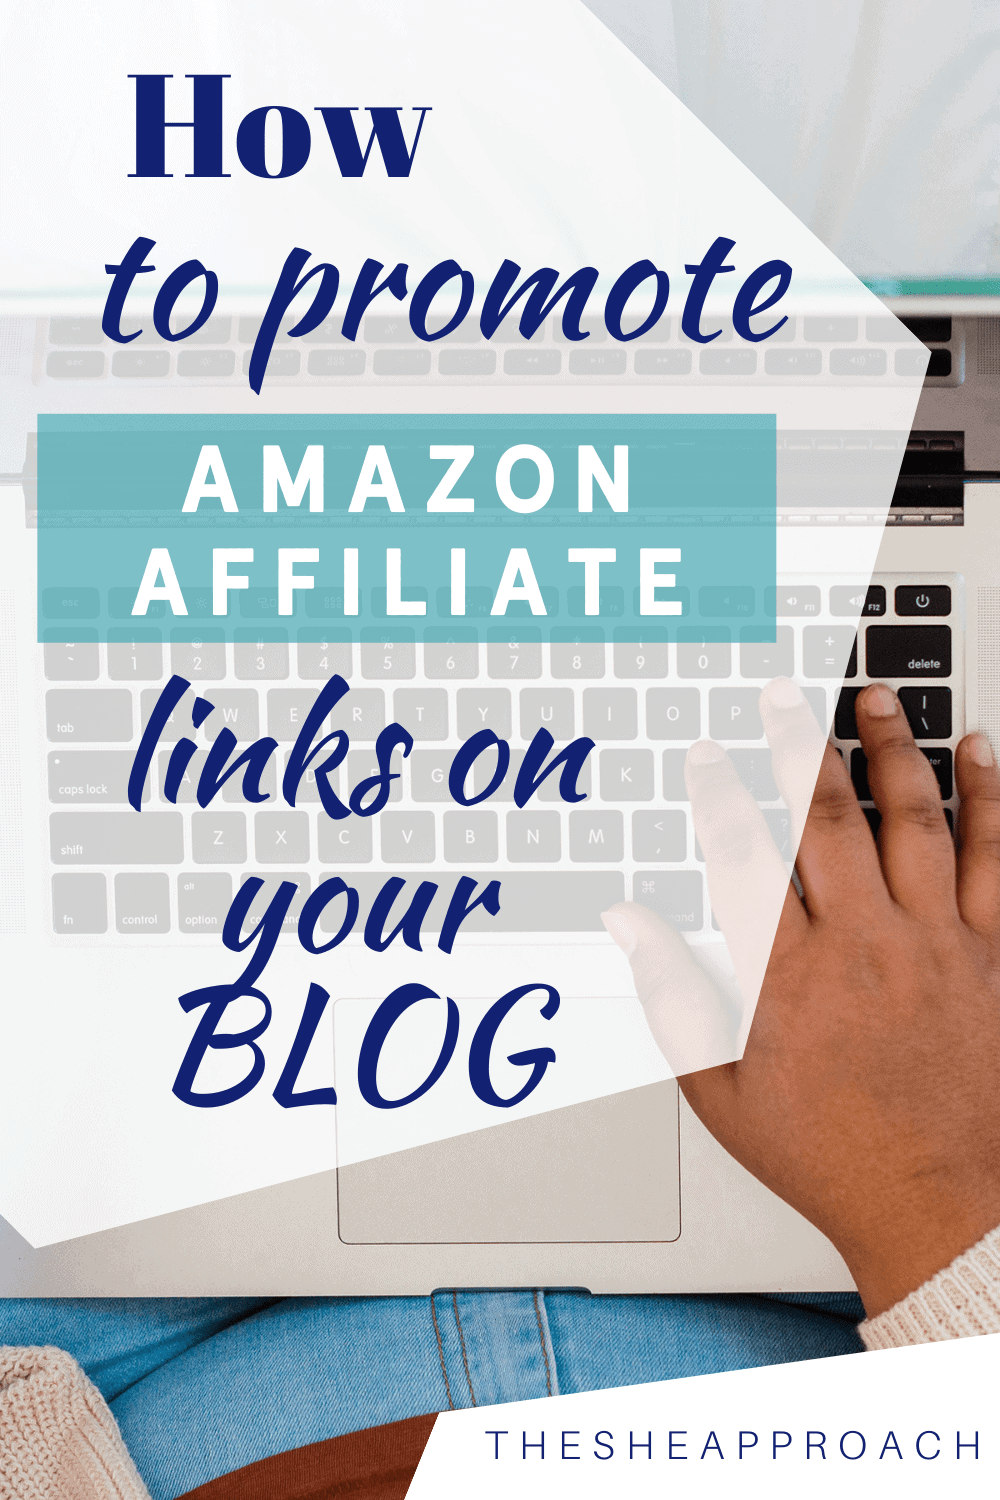 How to Add Amazon Affiliate Links and Images to WordPress Blog Posts